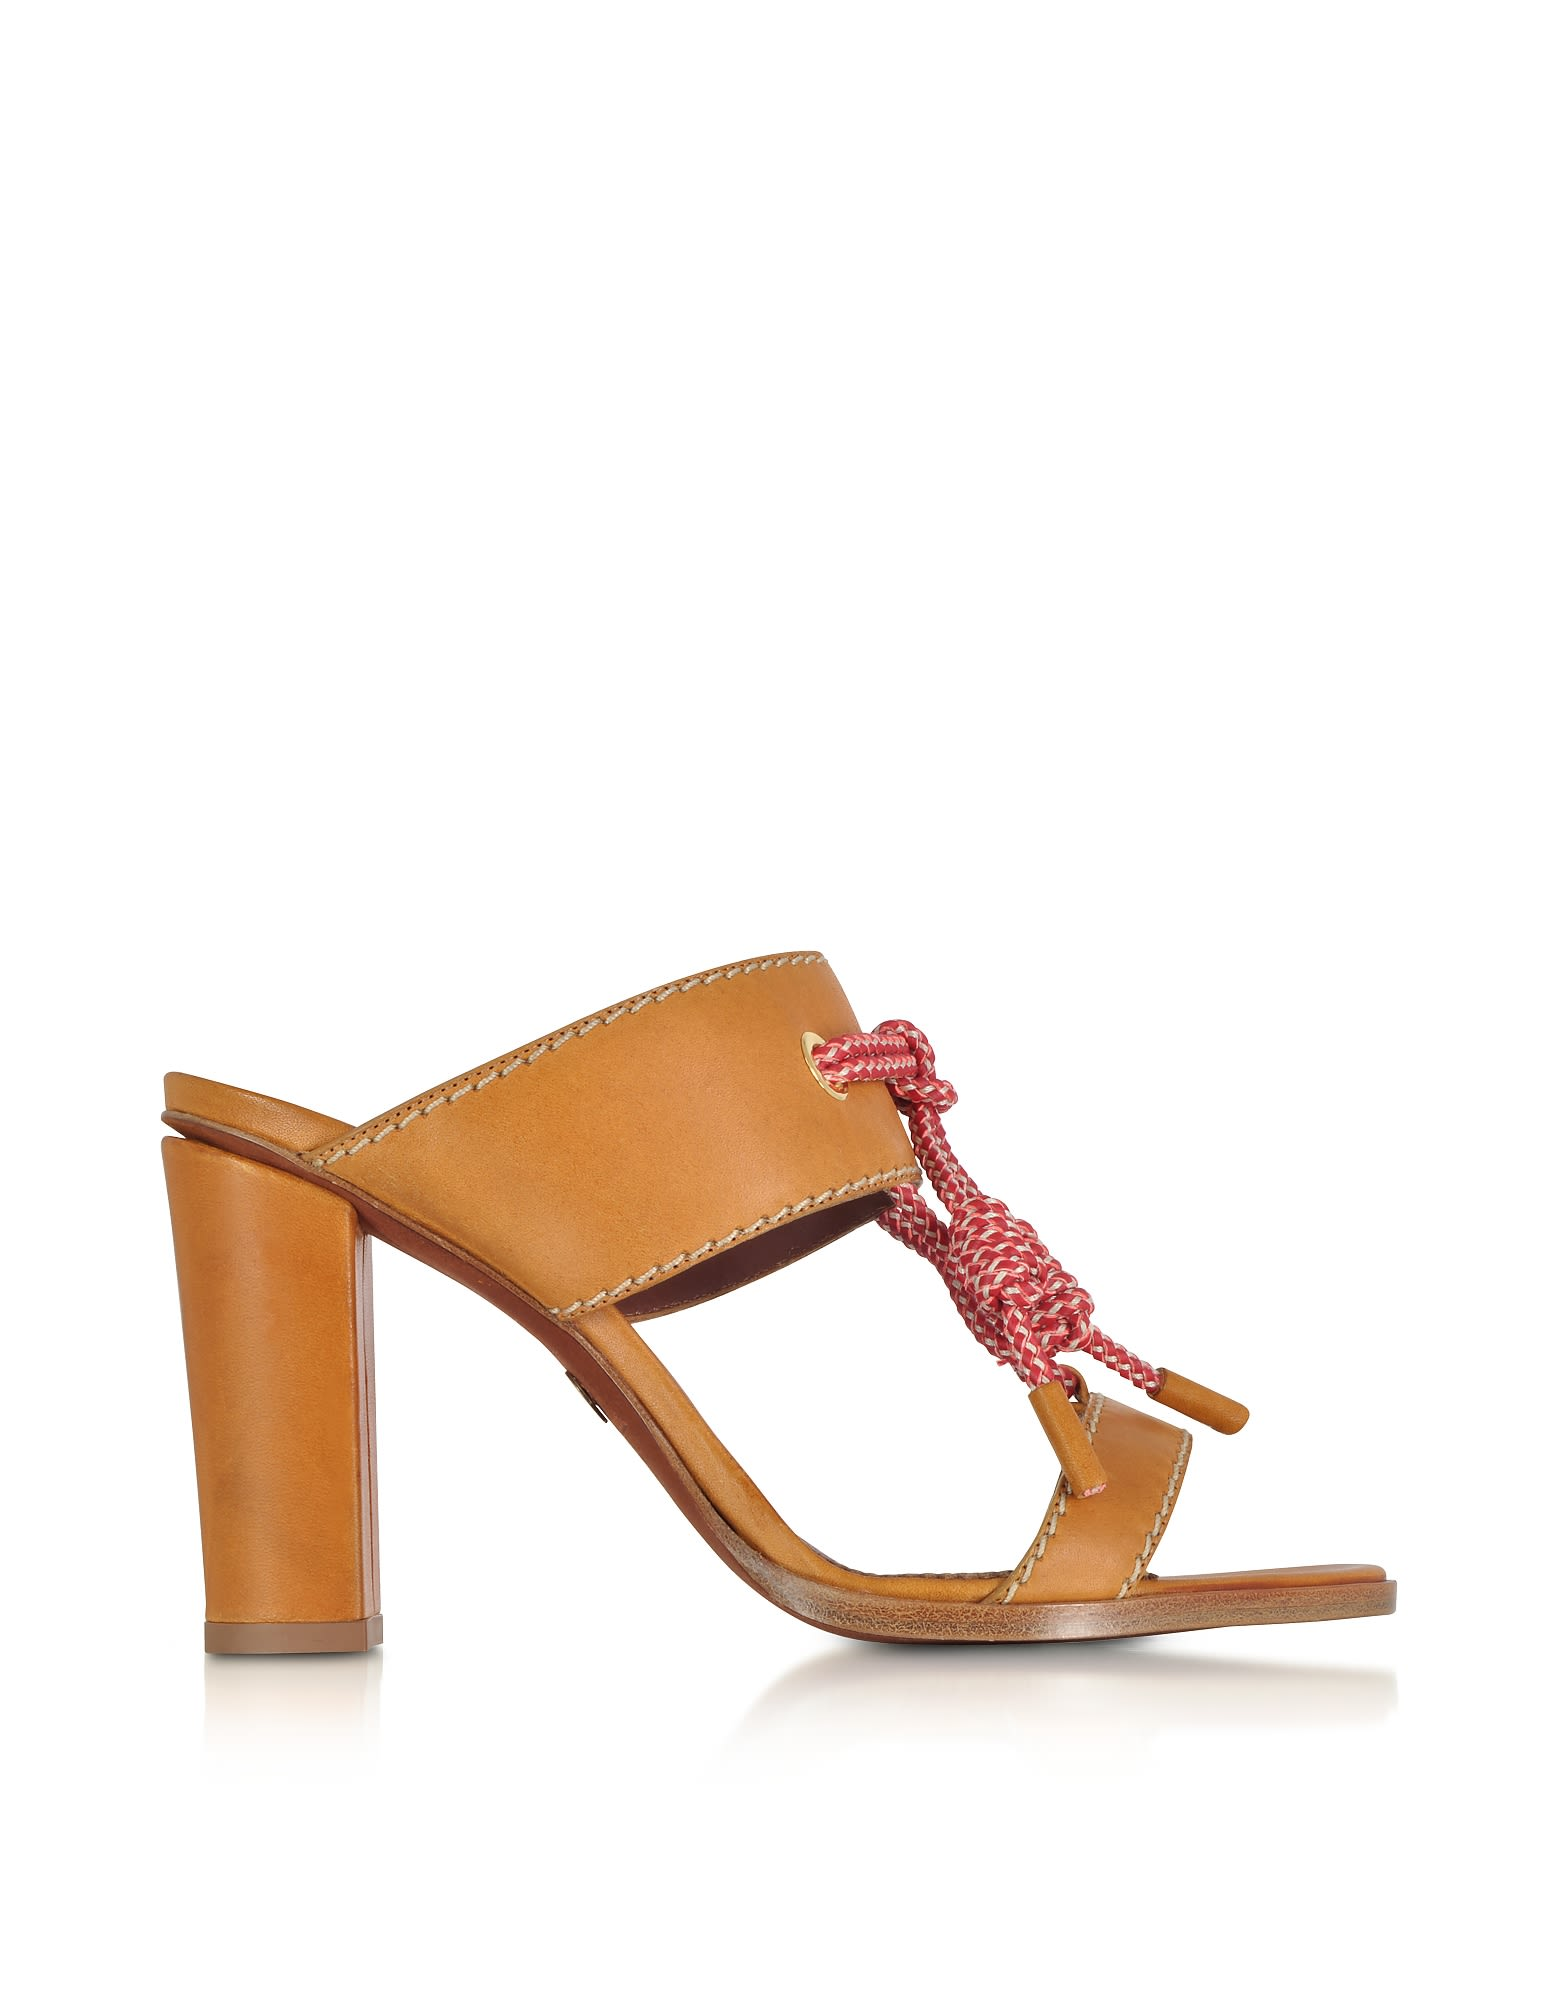 e18353a4a8 Dsquared2 Dsquared2 Camel Leather High Heel Sandals - Camel ...